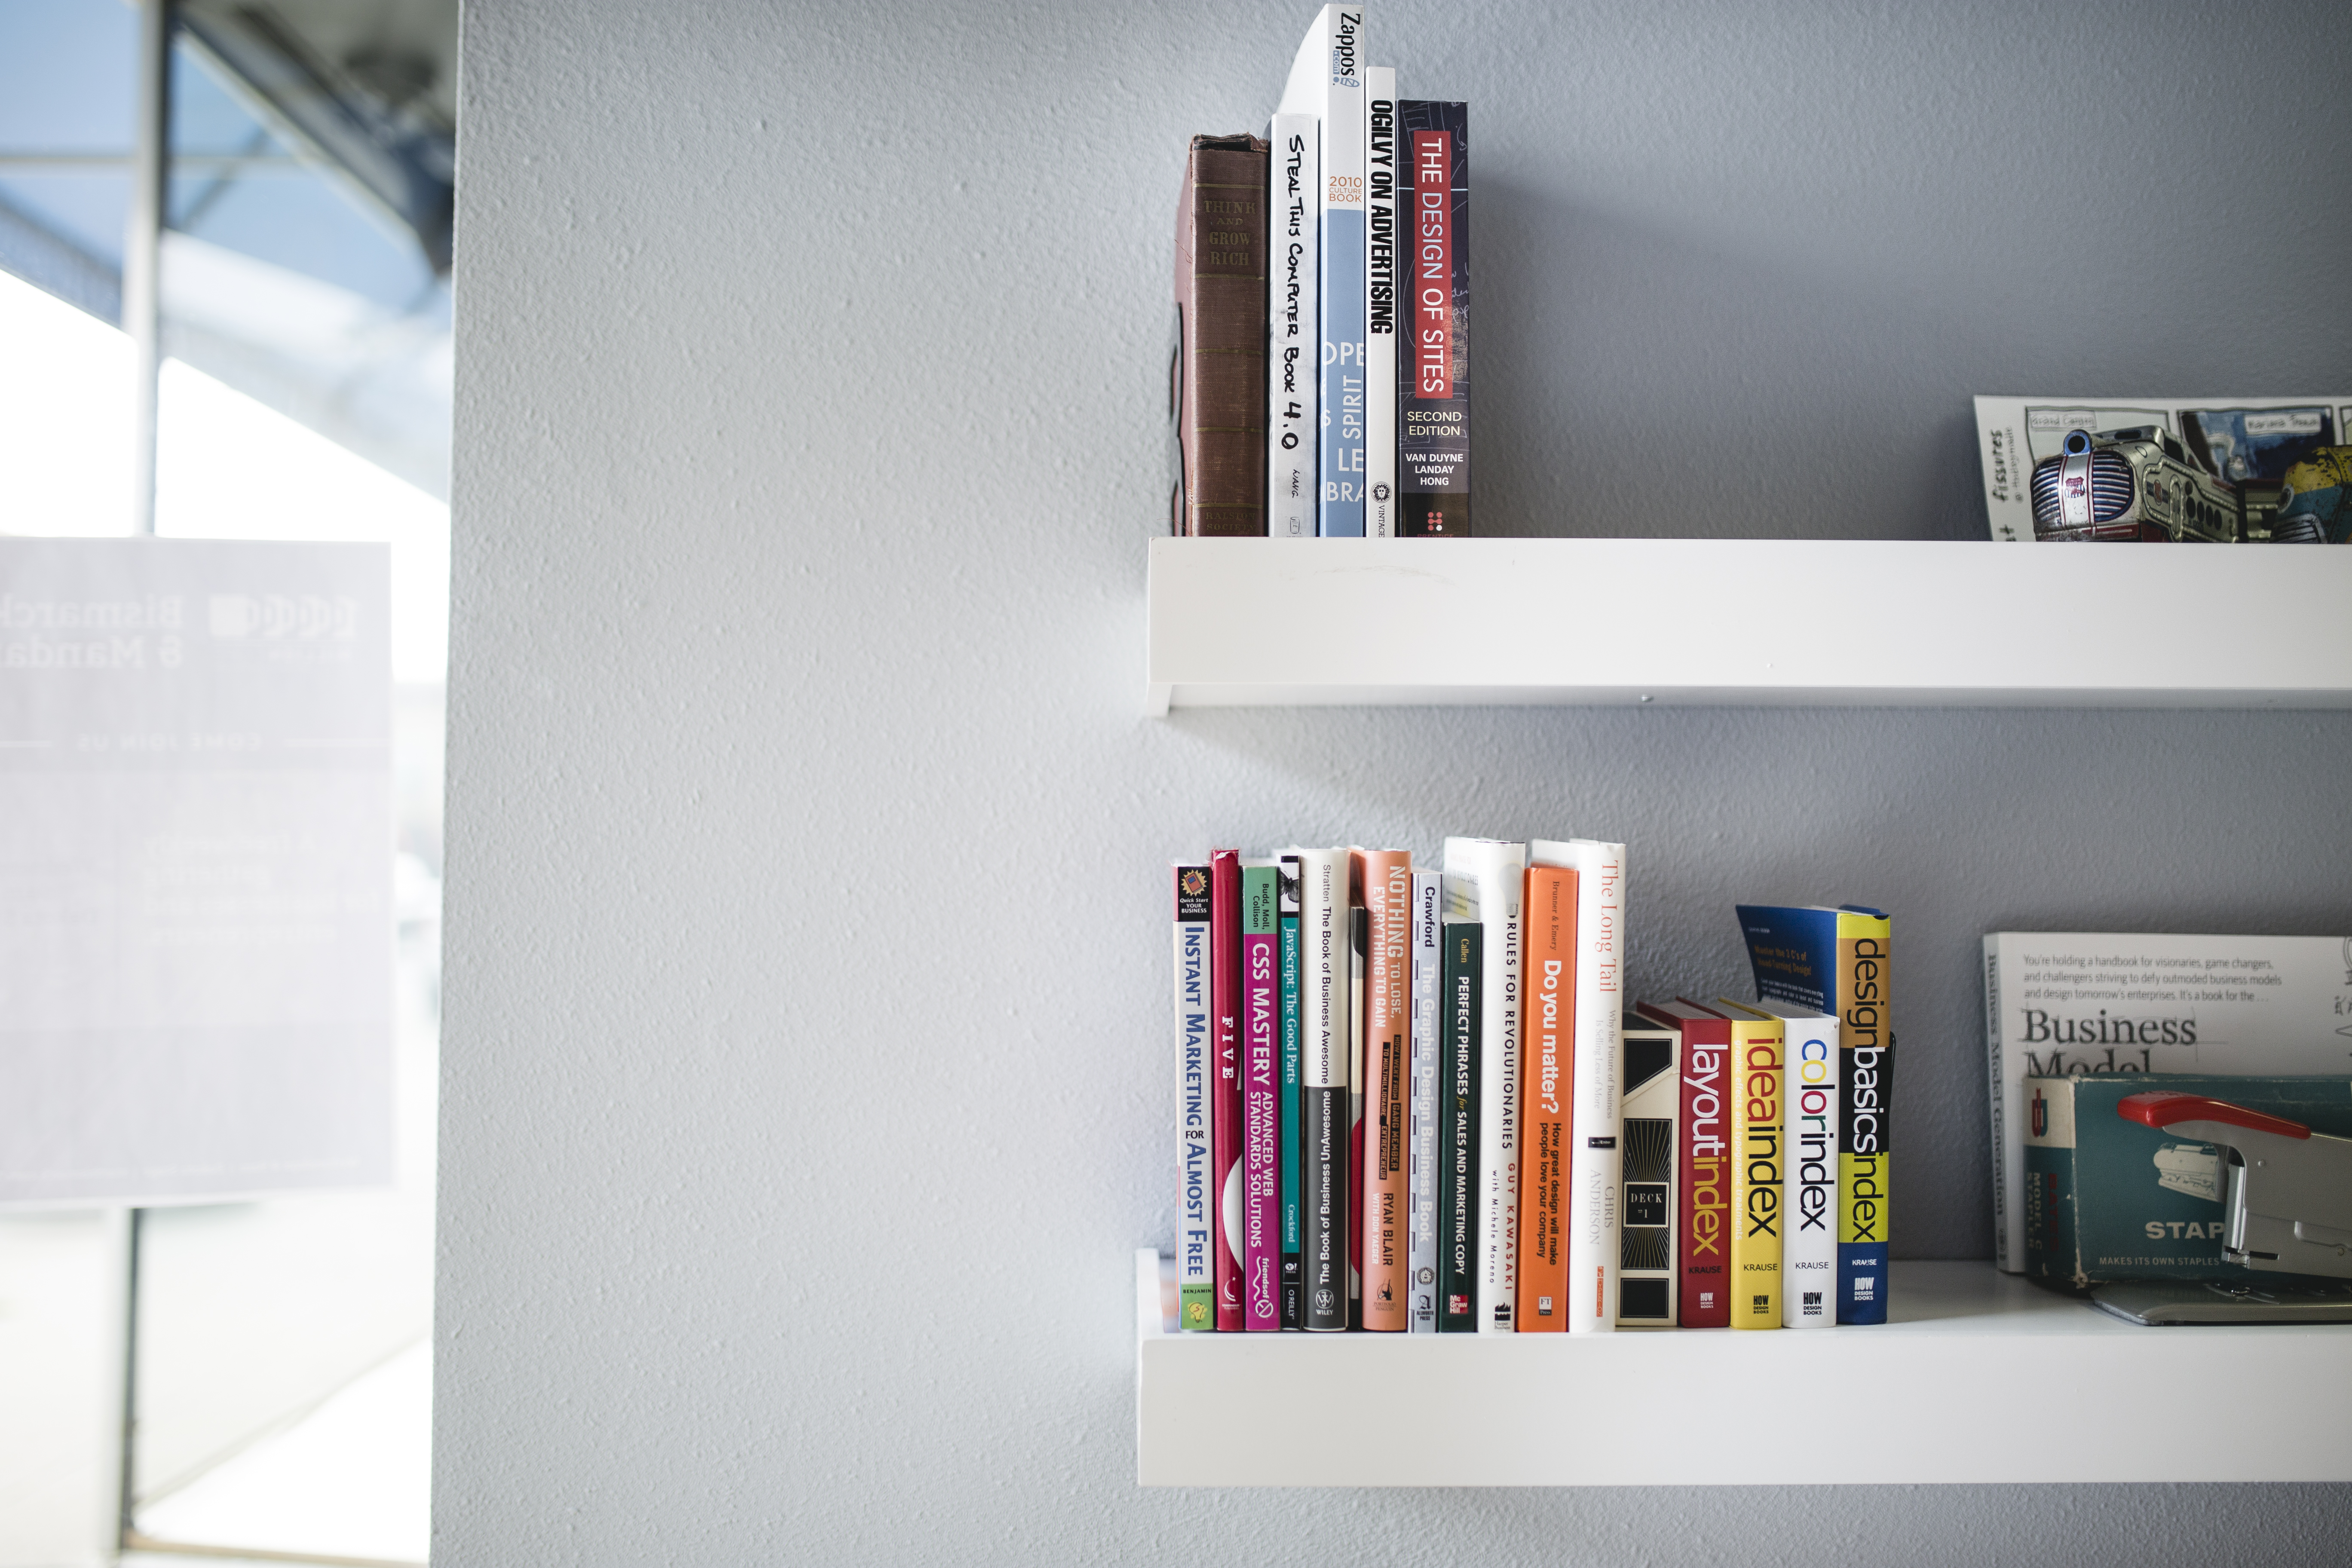 10 Great Healthy Eating Books